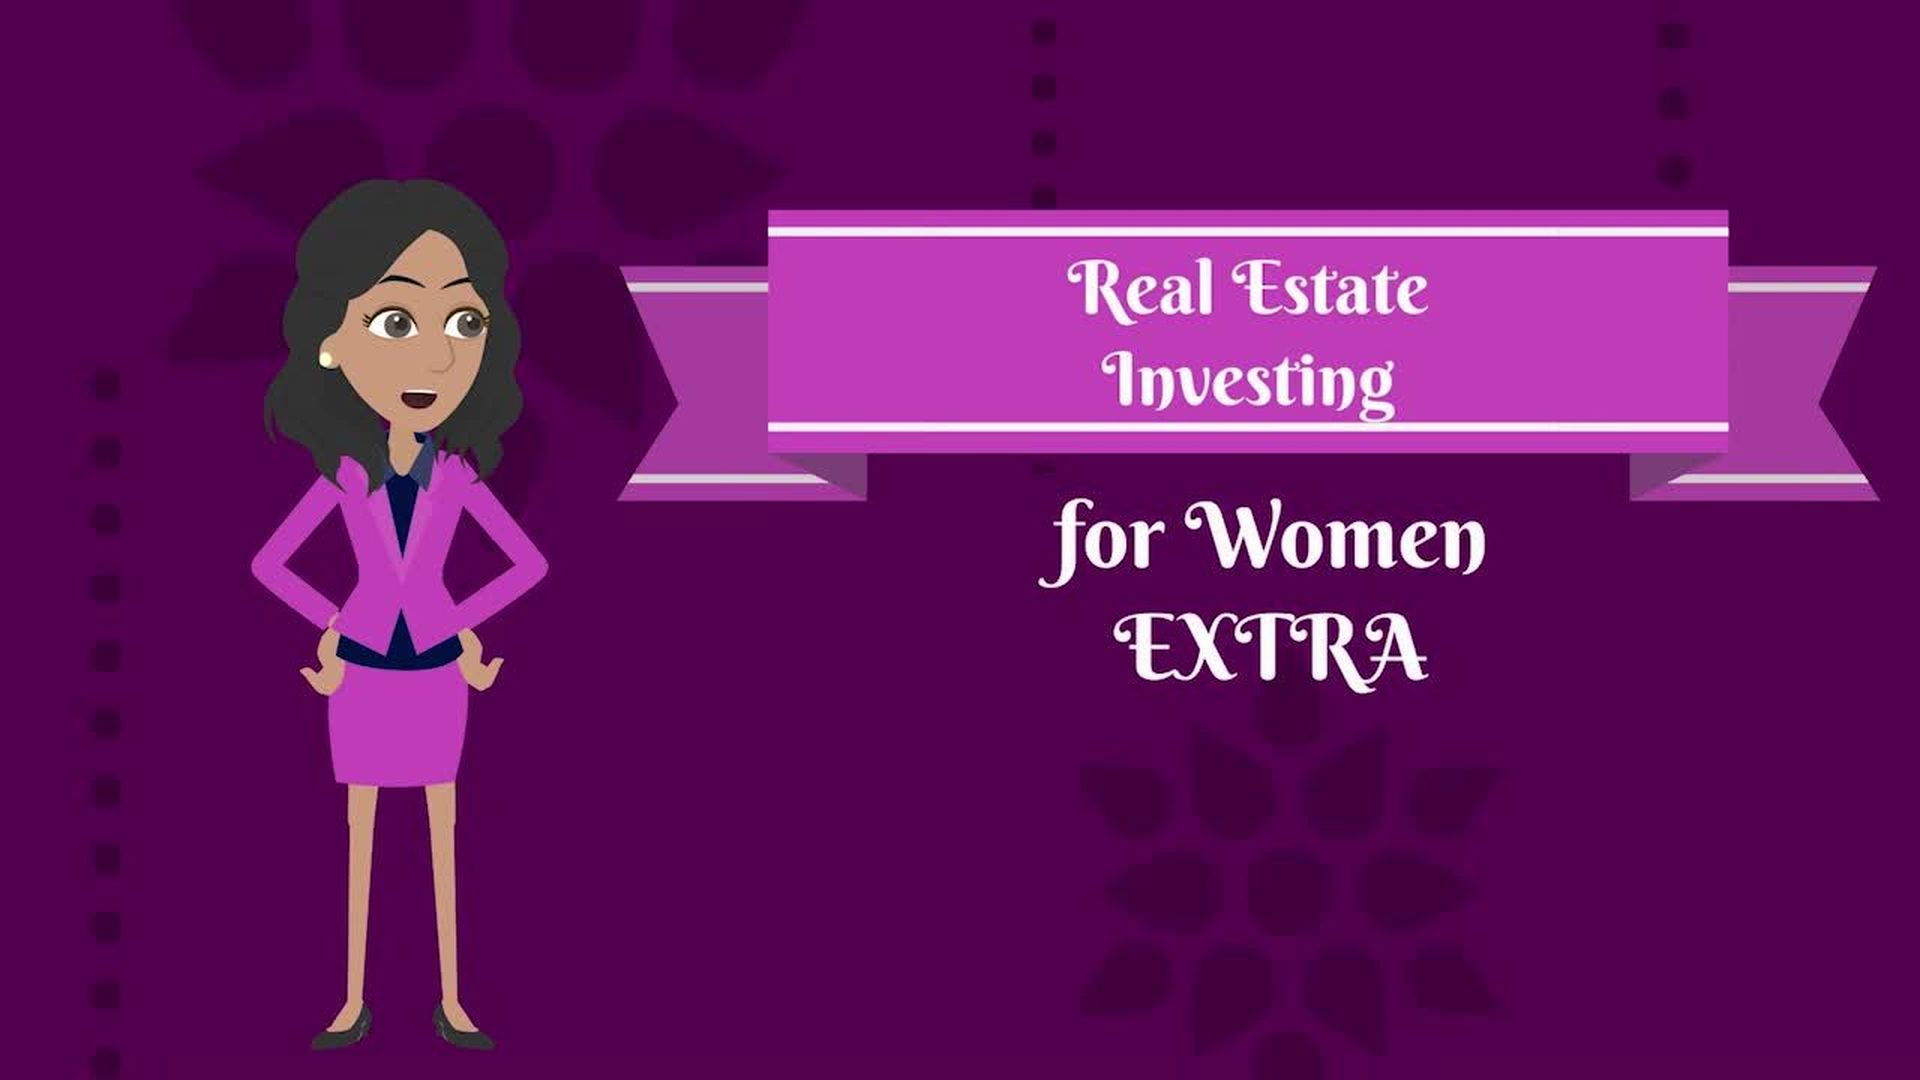 How to Build Wealth with Non-Performing Notes with Paige Panzarello - REAL ESTATE INVESTING FOR WOMEN EXTRA